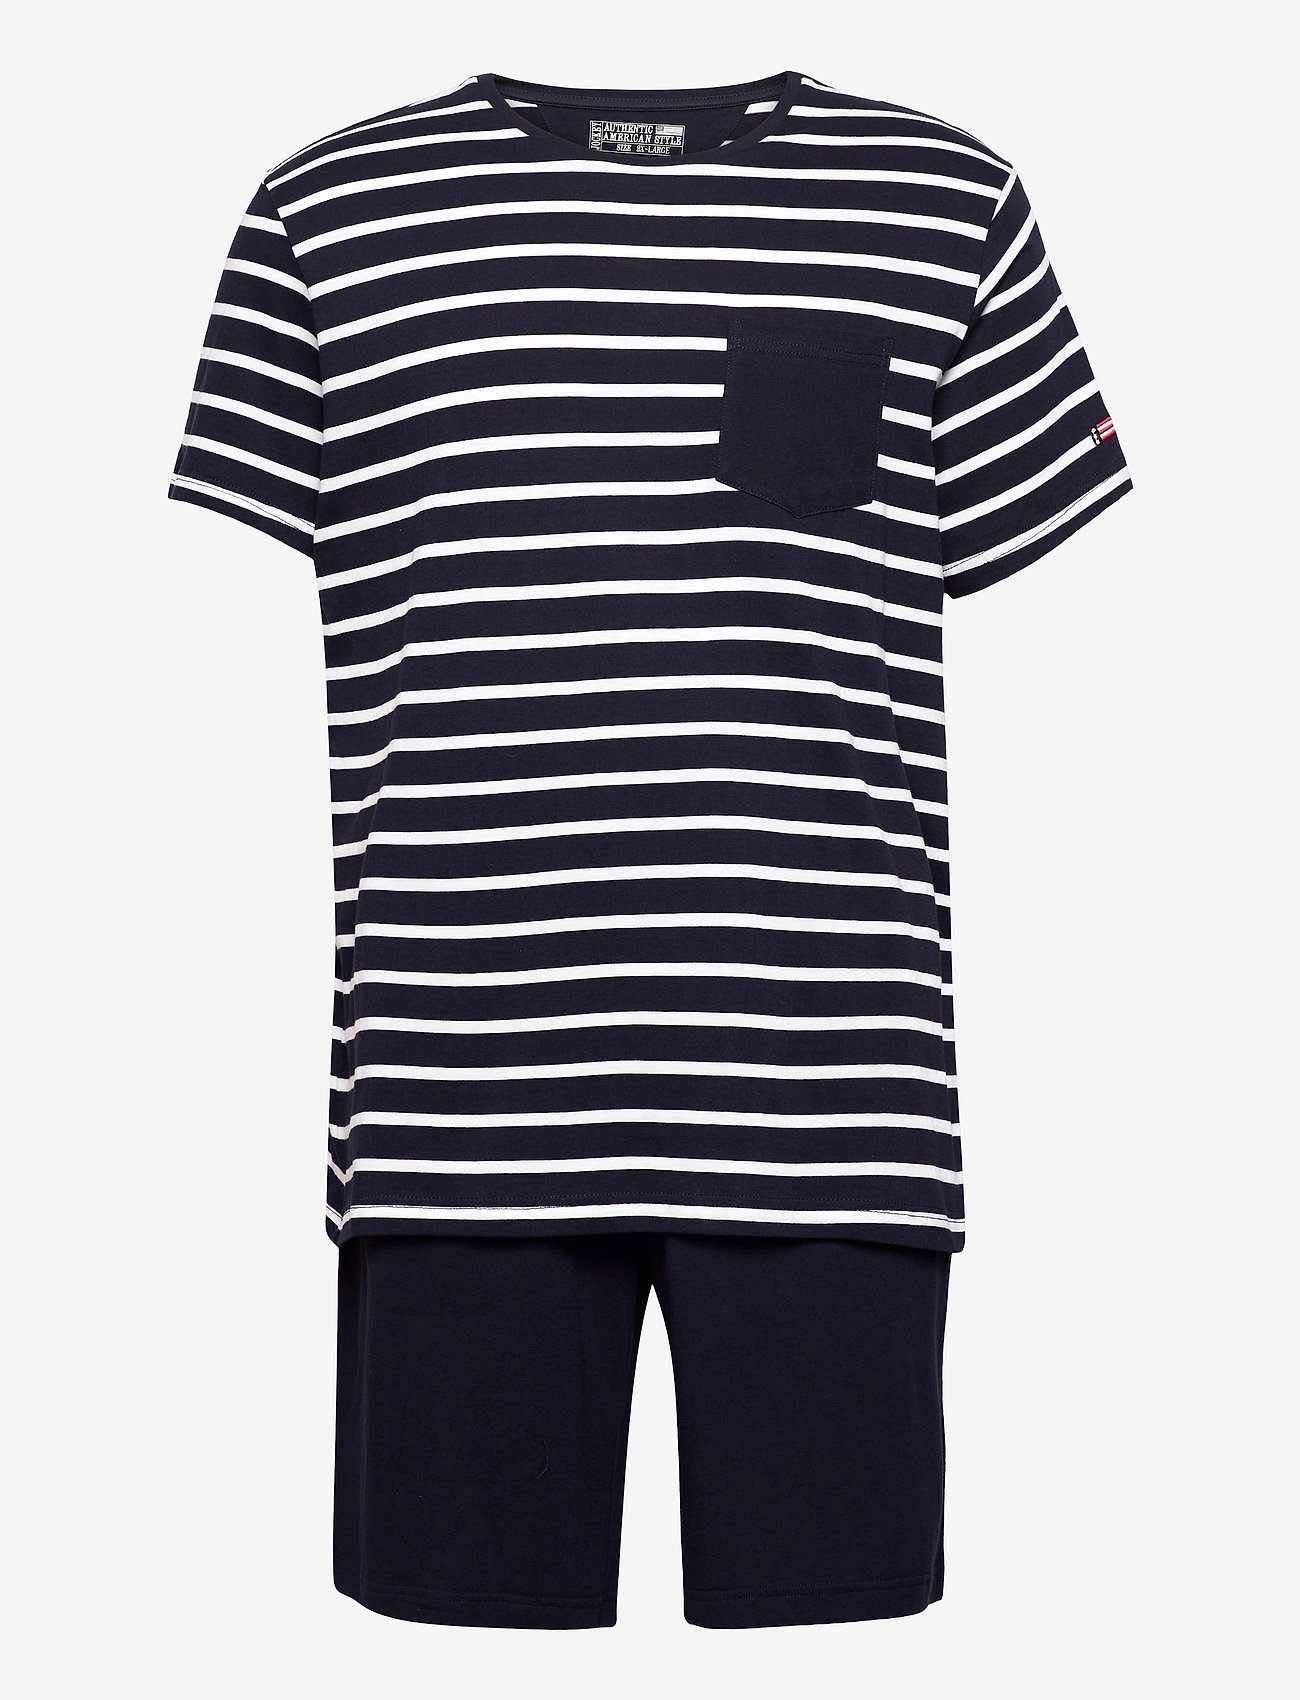 Jockey - Pyjama short knit - pyjama's - navy - 0